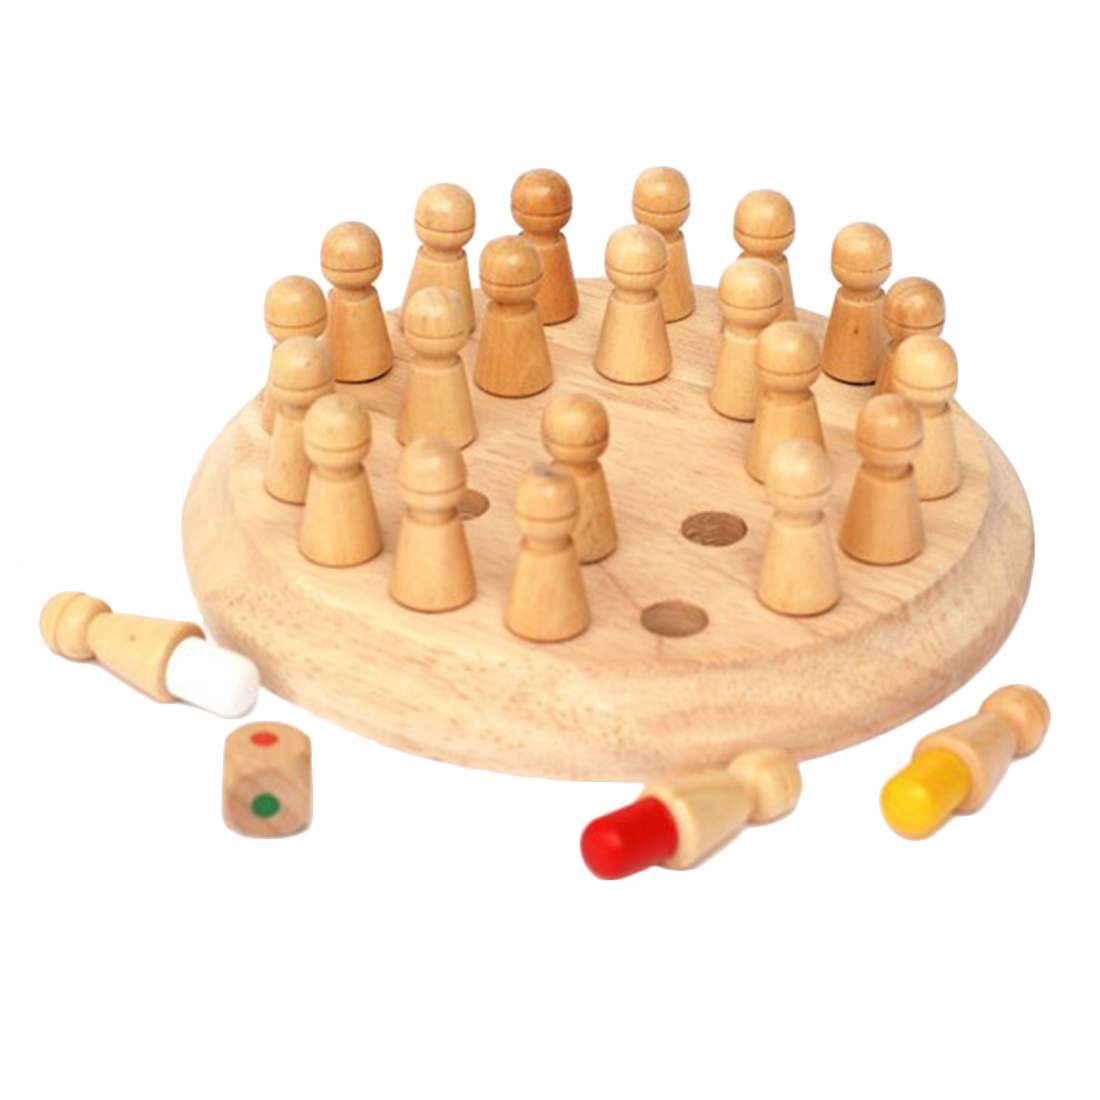 Kids Memory Match Stick Chess Wooden Chess Checkers Board Game Baby Toy Educational Toys(China (Mainland))